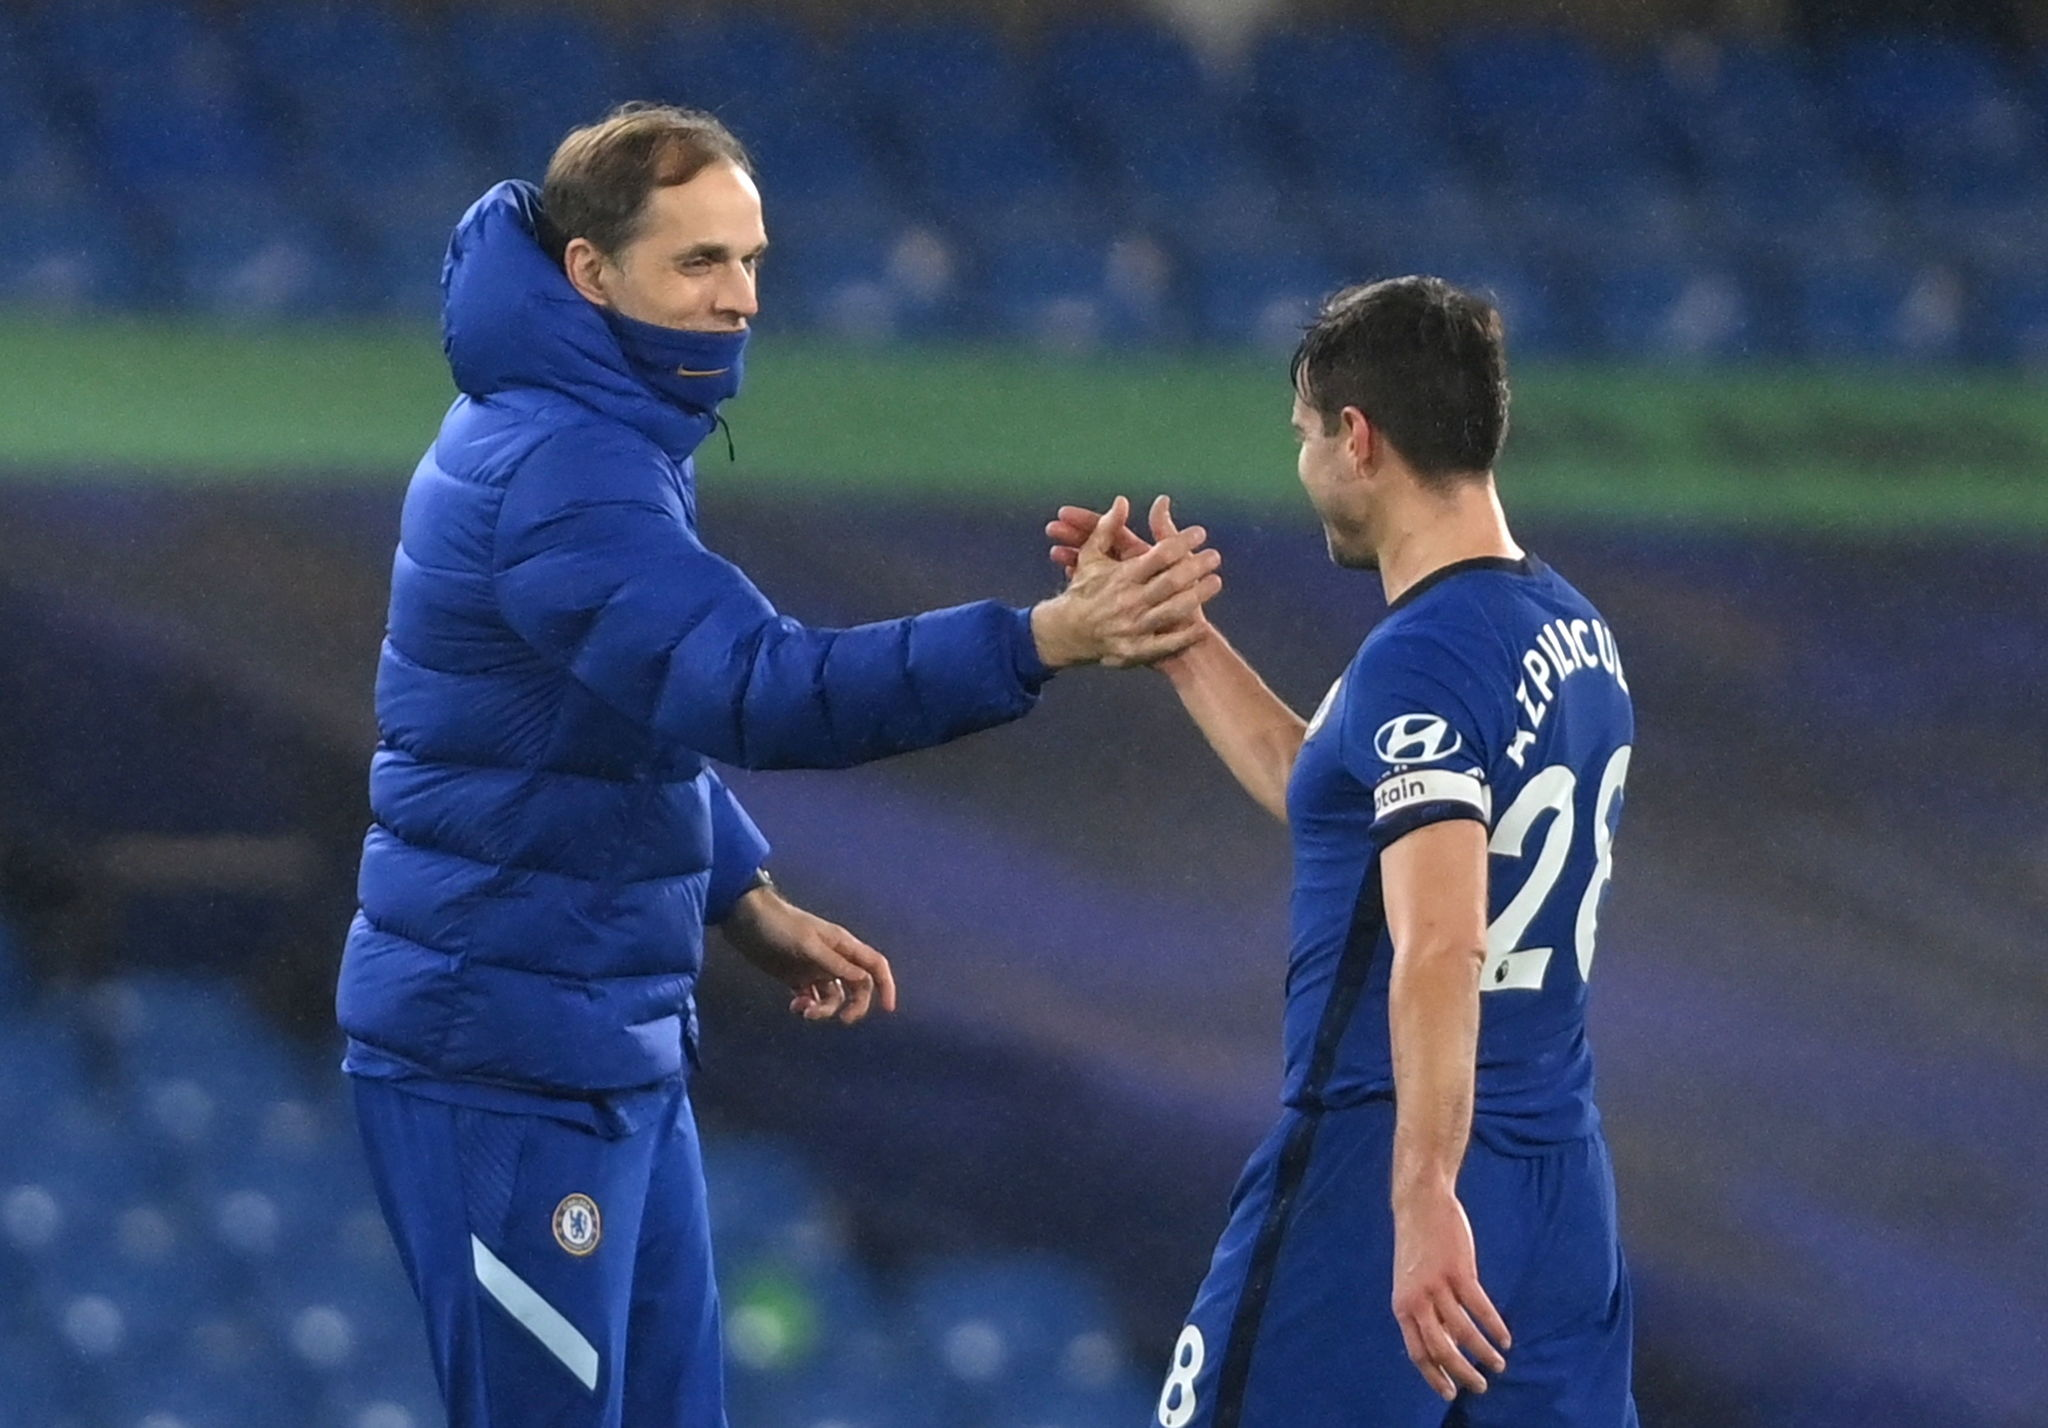 London (United Kingdom), 15/02/2021.- Chelsea's Cesar lt;HIT gt;Azpilicueta lt;/HIT gt; (R) shakes hands with manager Thomas Tuchel (L) after the the English Premier League soccer match between Chelsea FC and Newcastle United in London, Britain, 15 February 2021. (Reino Unido, Londres) EFE/EPA/Mike Hewitt / POOL EDITORIAL USE ONLY. No use with unauthorized audio, video, data, fixture lists, club/league logos or 'live' services. Online in-match use limited to 120 images, no video emulation. No use in betting, games or single club/league/player publications